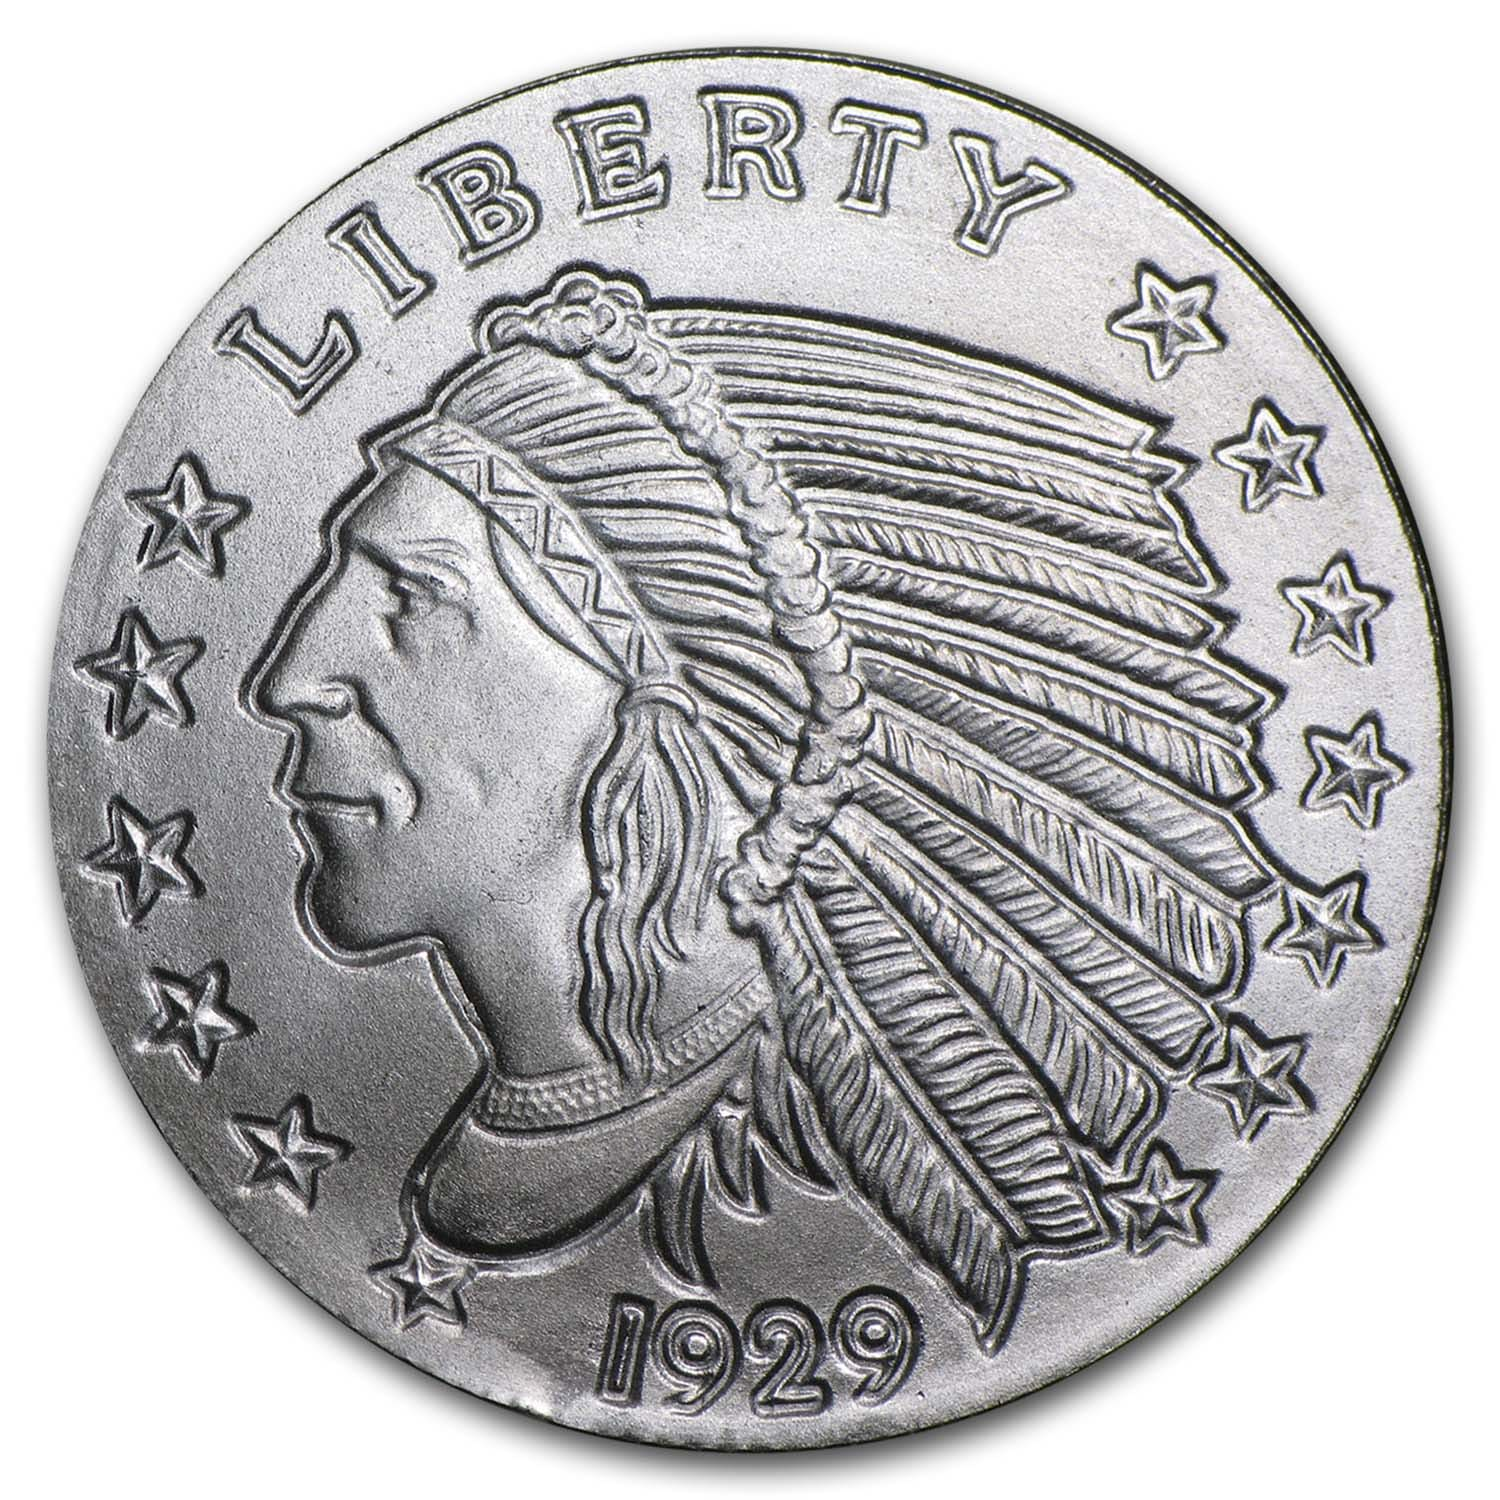 1/4 oz Silver Round - Incuse Indian